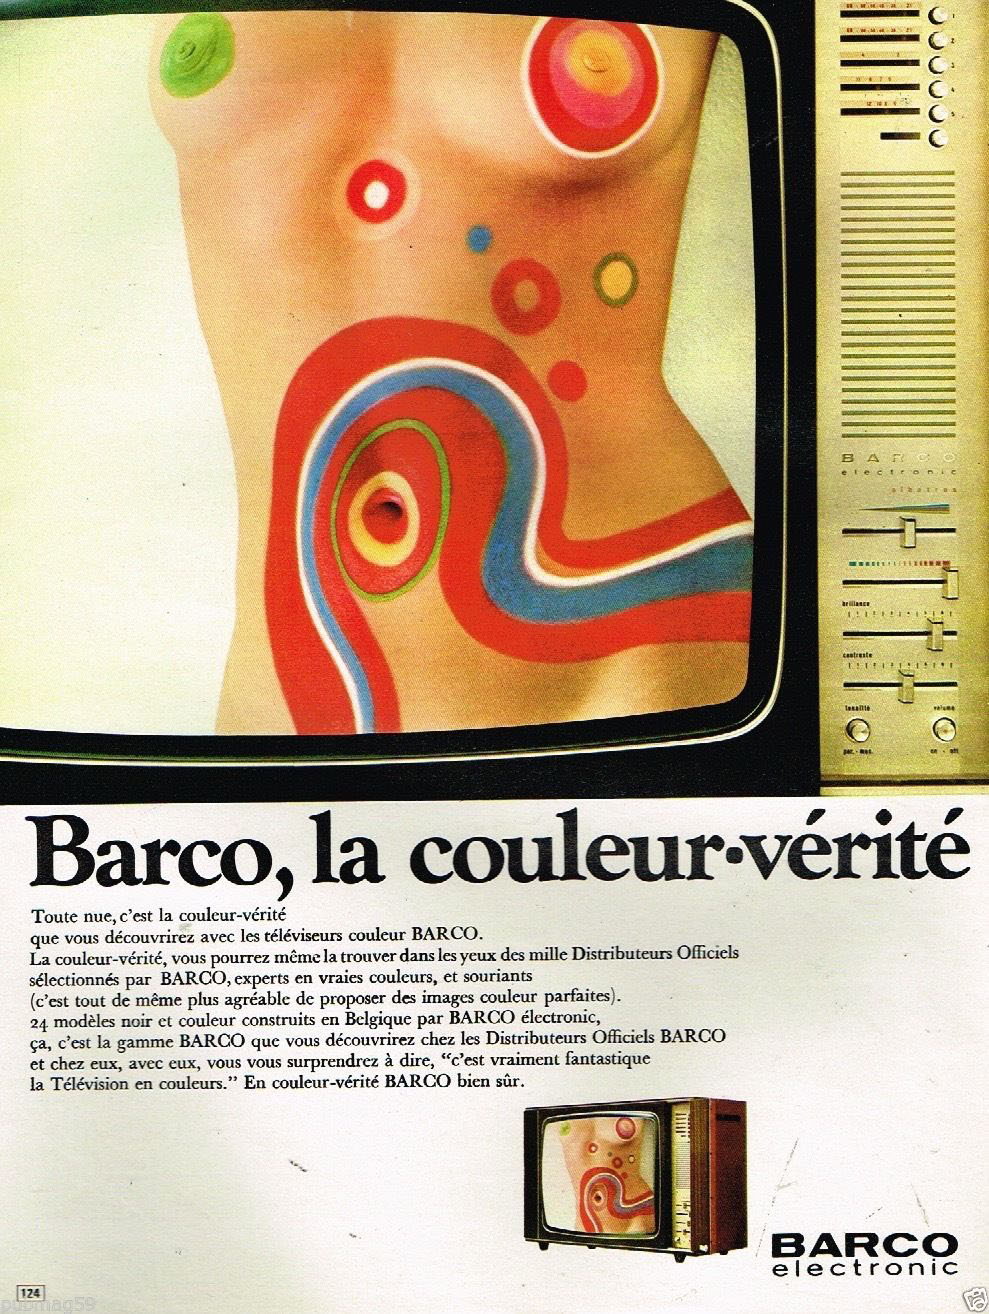 Publicité advertising 1970 Televiseur Television Barco electronic Couleur